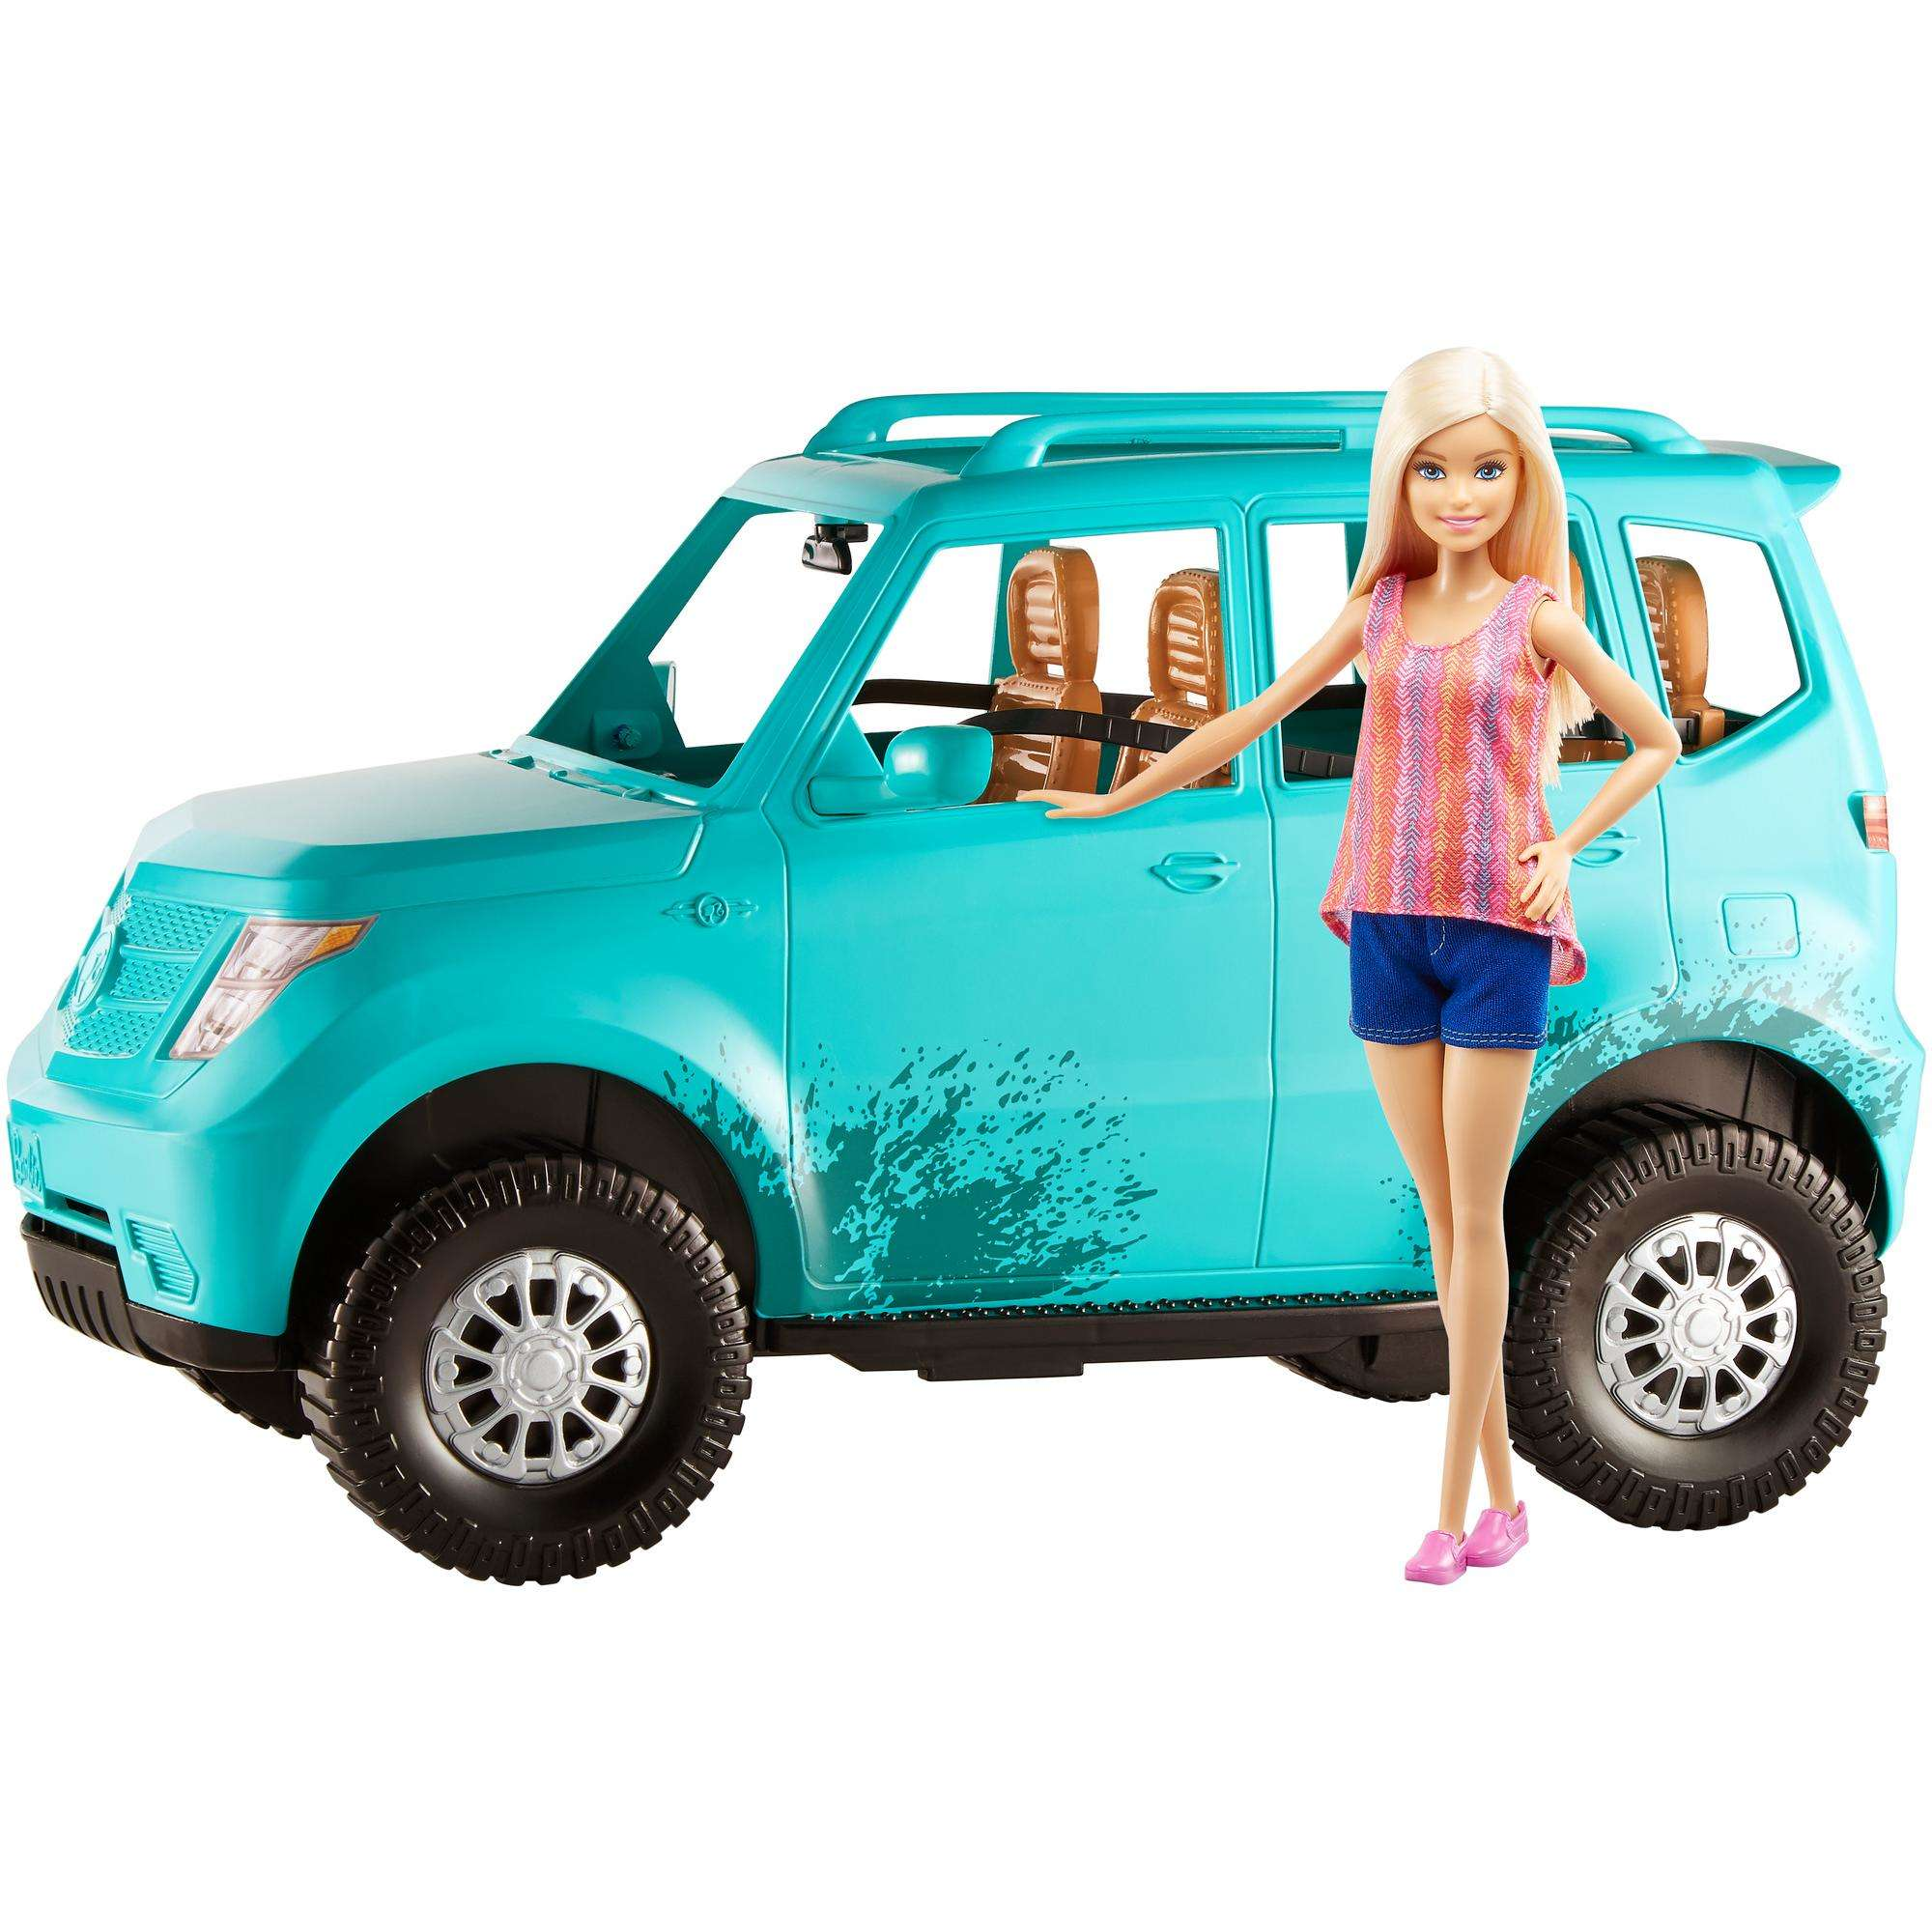 Barbie Camping Fun Doll and Teal Off-Road Adventure Vehicle by MATTEL BRANDS A DIVISION OF MATTEL DIRECT IMPORT INC